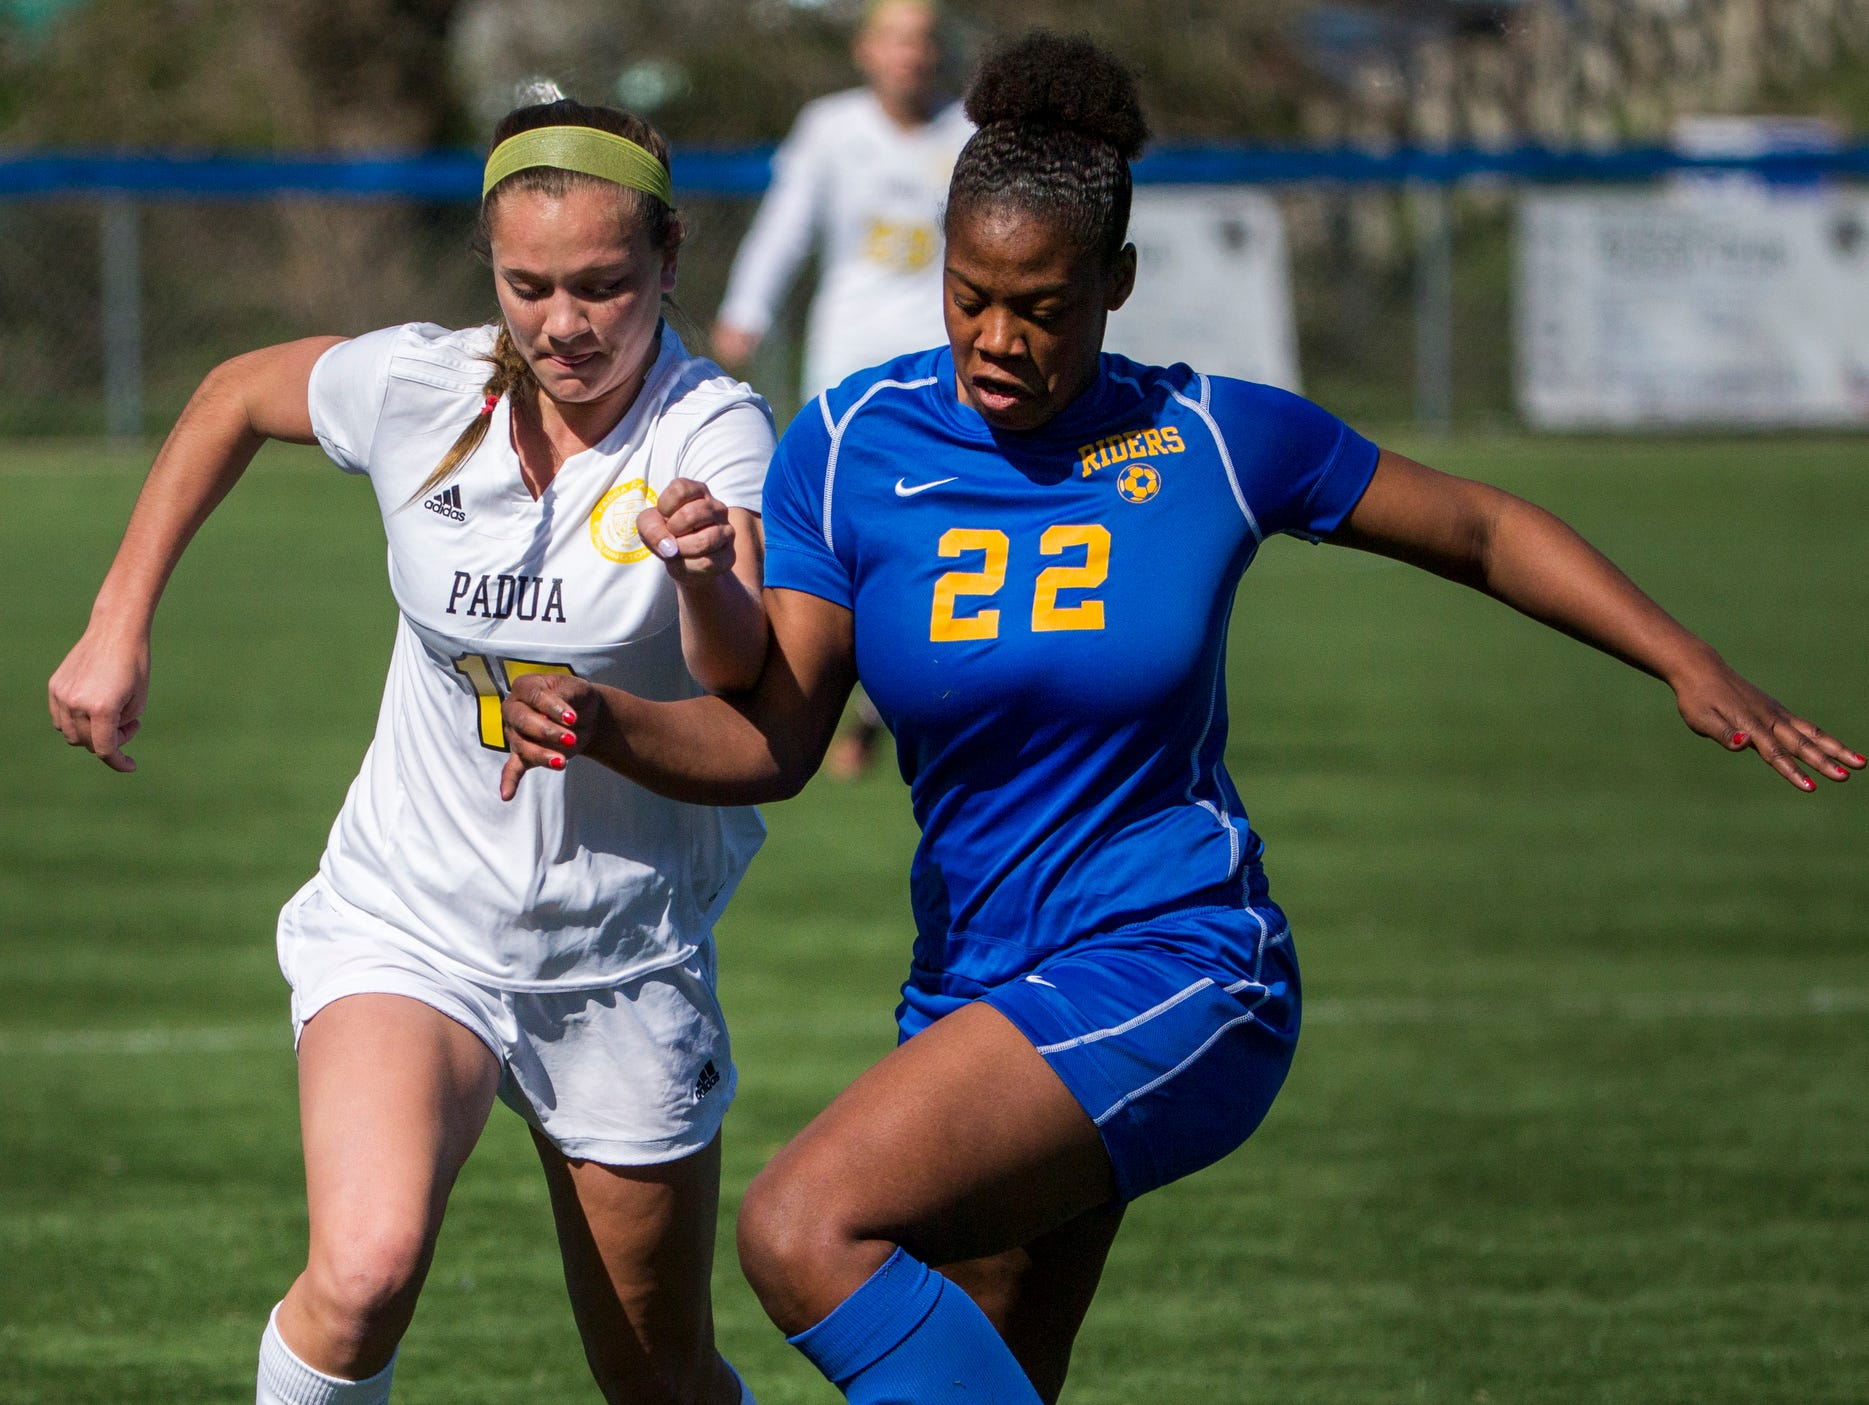 Padua's Lindsay Machamer (left) and Caesar Rodney's Jameah Nixon chase down the ball in the first half of Padua's 2-0 win over Caesar Rodney at the Hockessin Soccer Club on Tuesday afternoon.